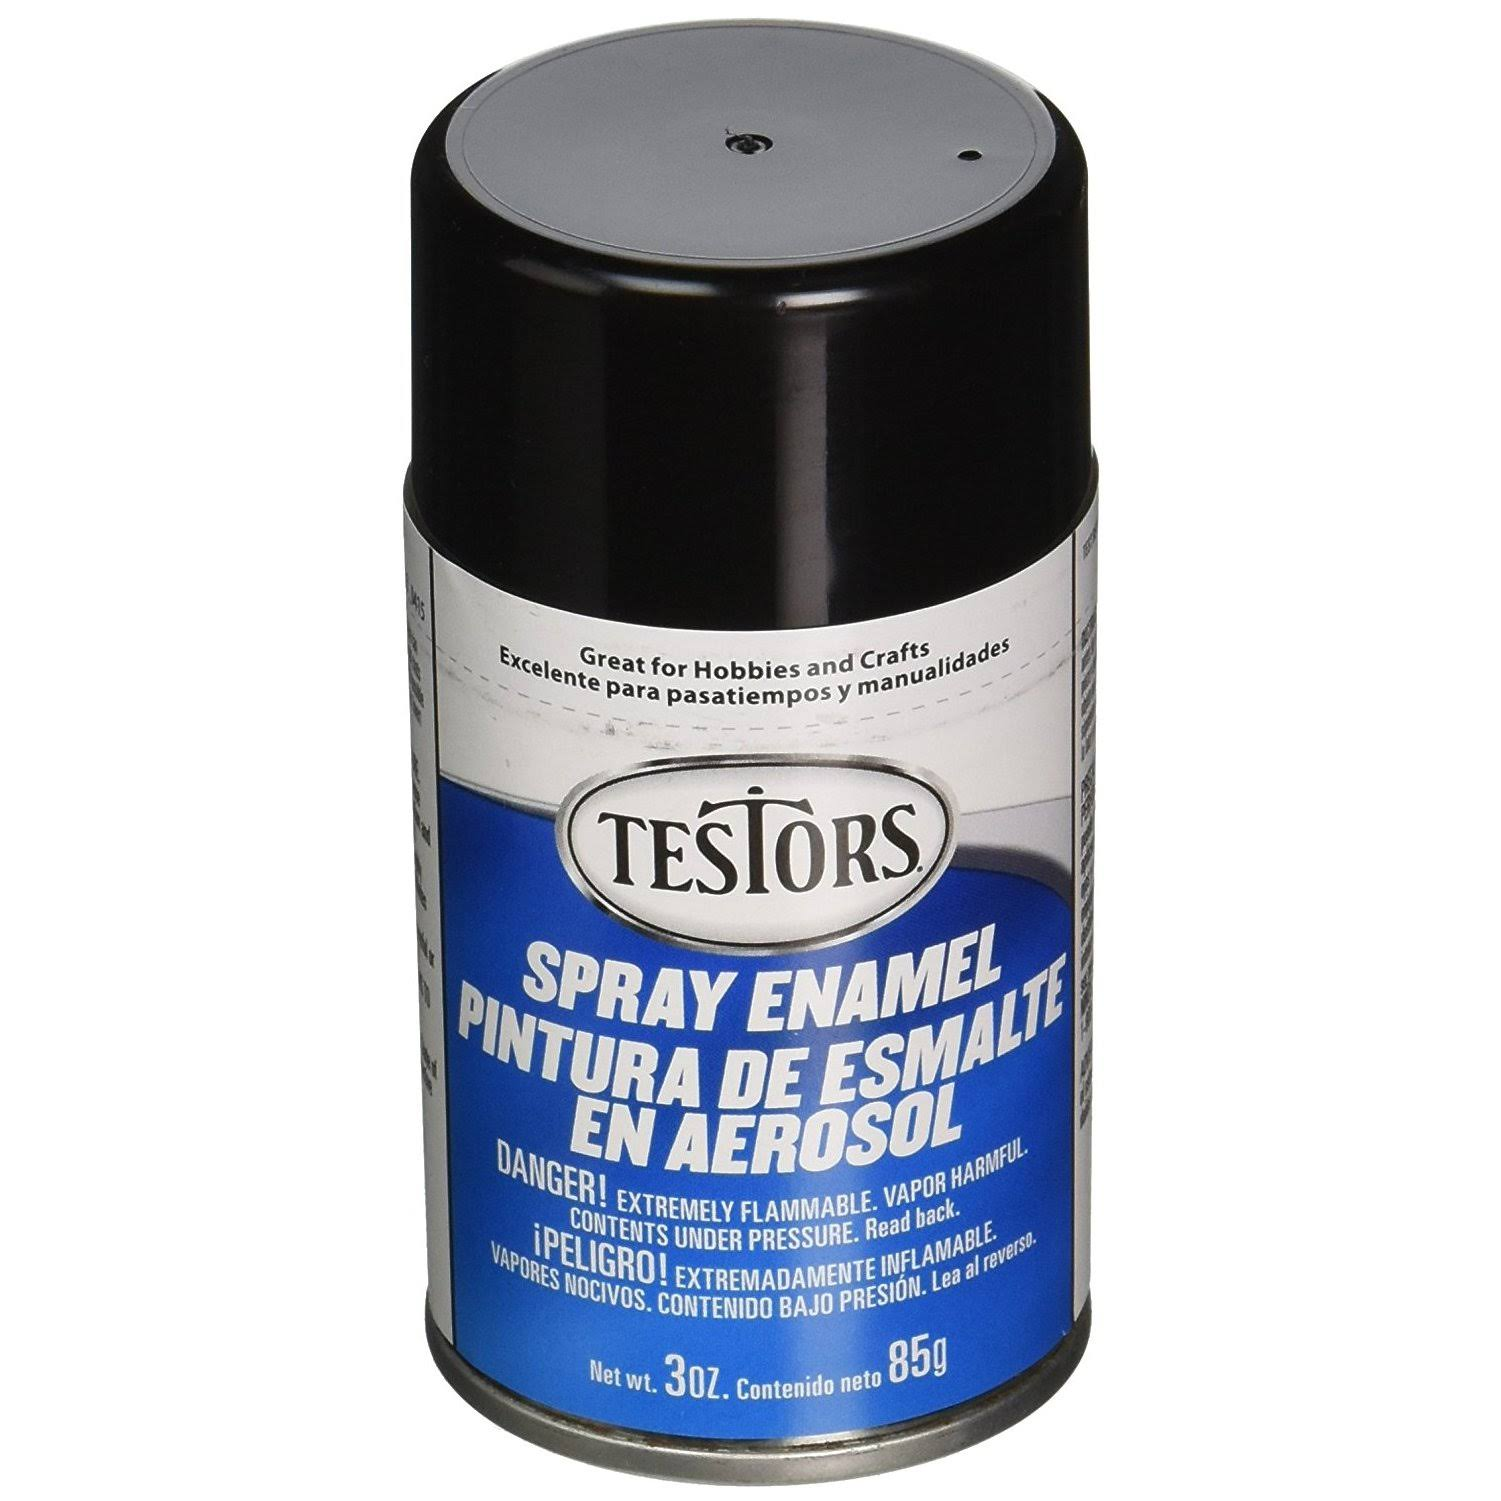 Testors Spray Enamel Paint - 3 oz, Gloss Black